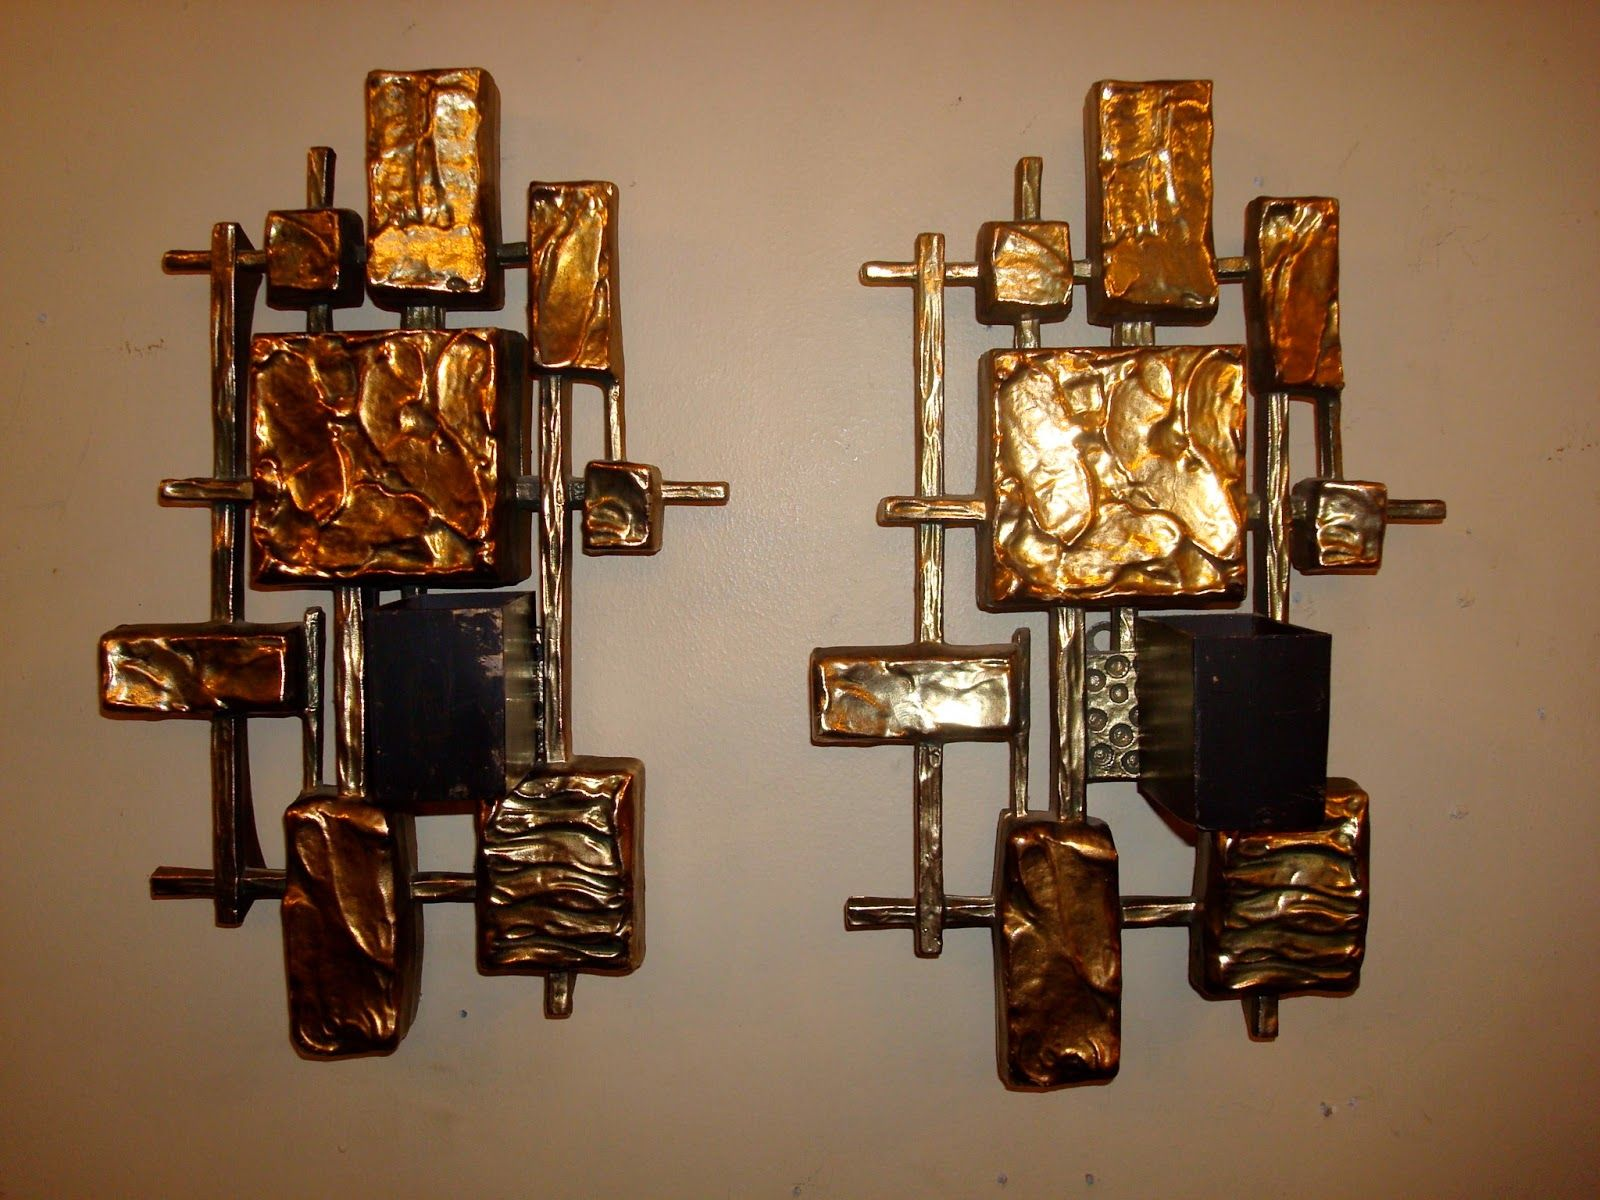 Unique gold square candle sconces for home lighting ideas house unique gold square candle sconces for home lighting ideas amipublicfo Images